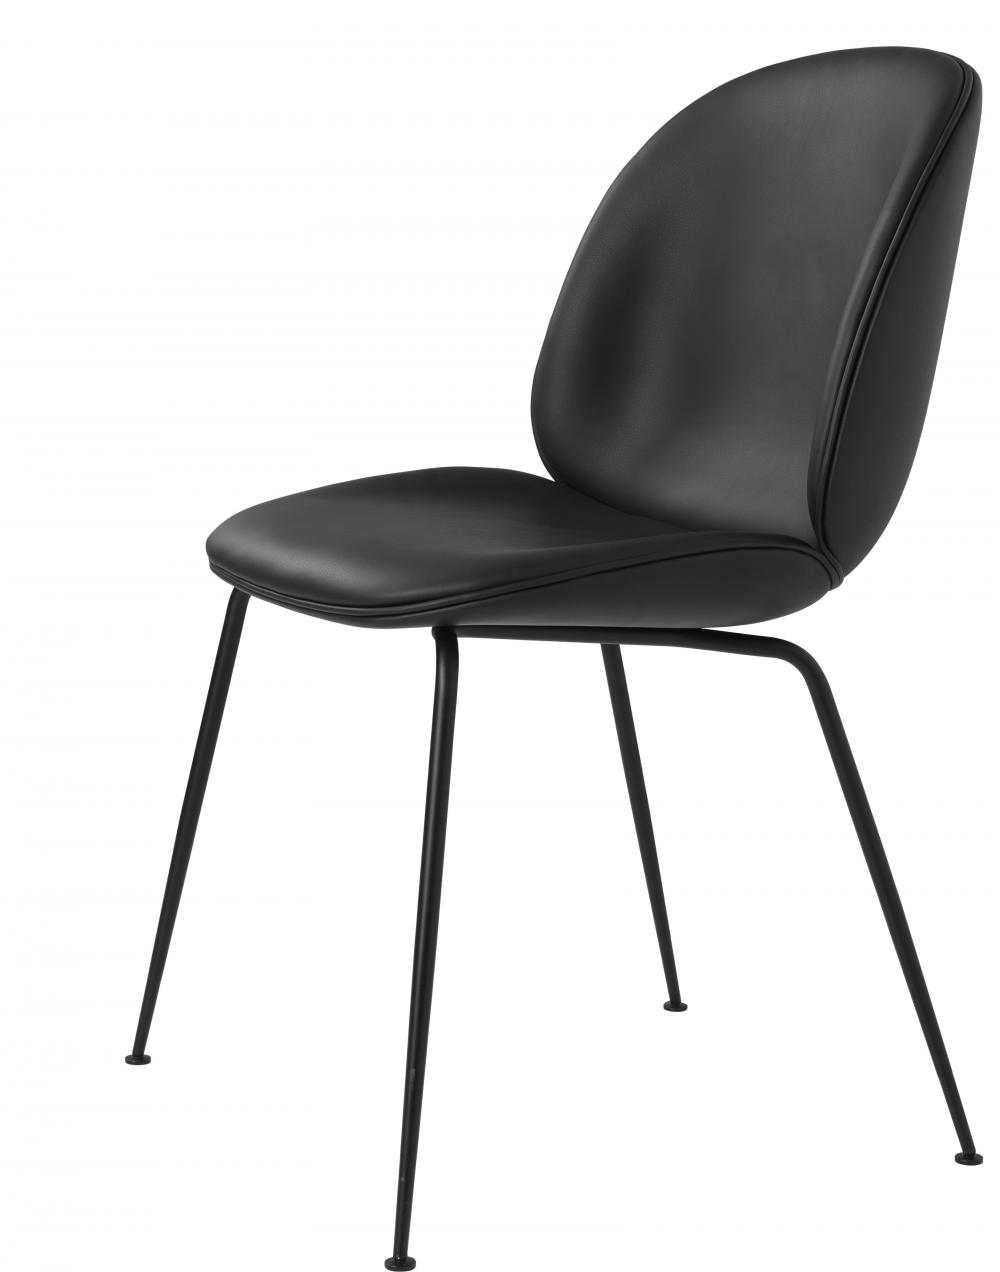 Beetle Dining Chair - Conic Base - Fully Upholstered